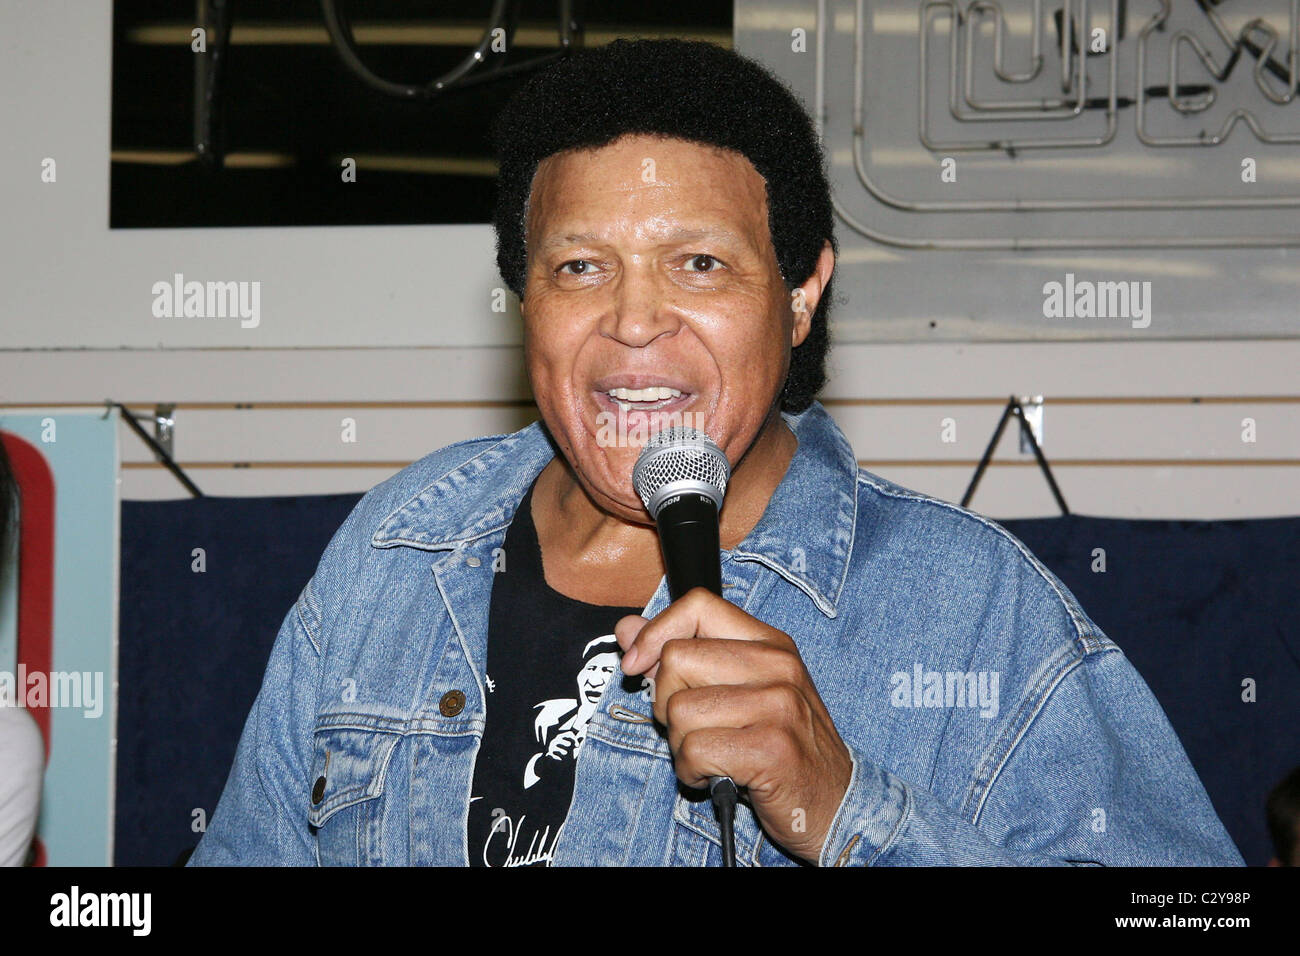 Chubby checker with a microphone